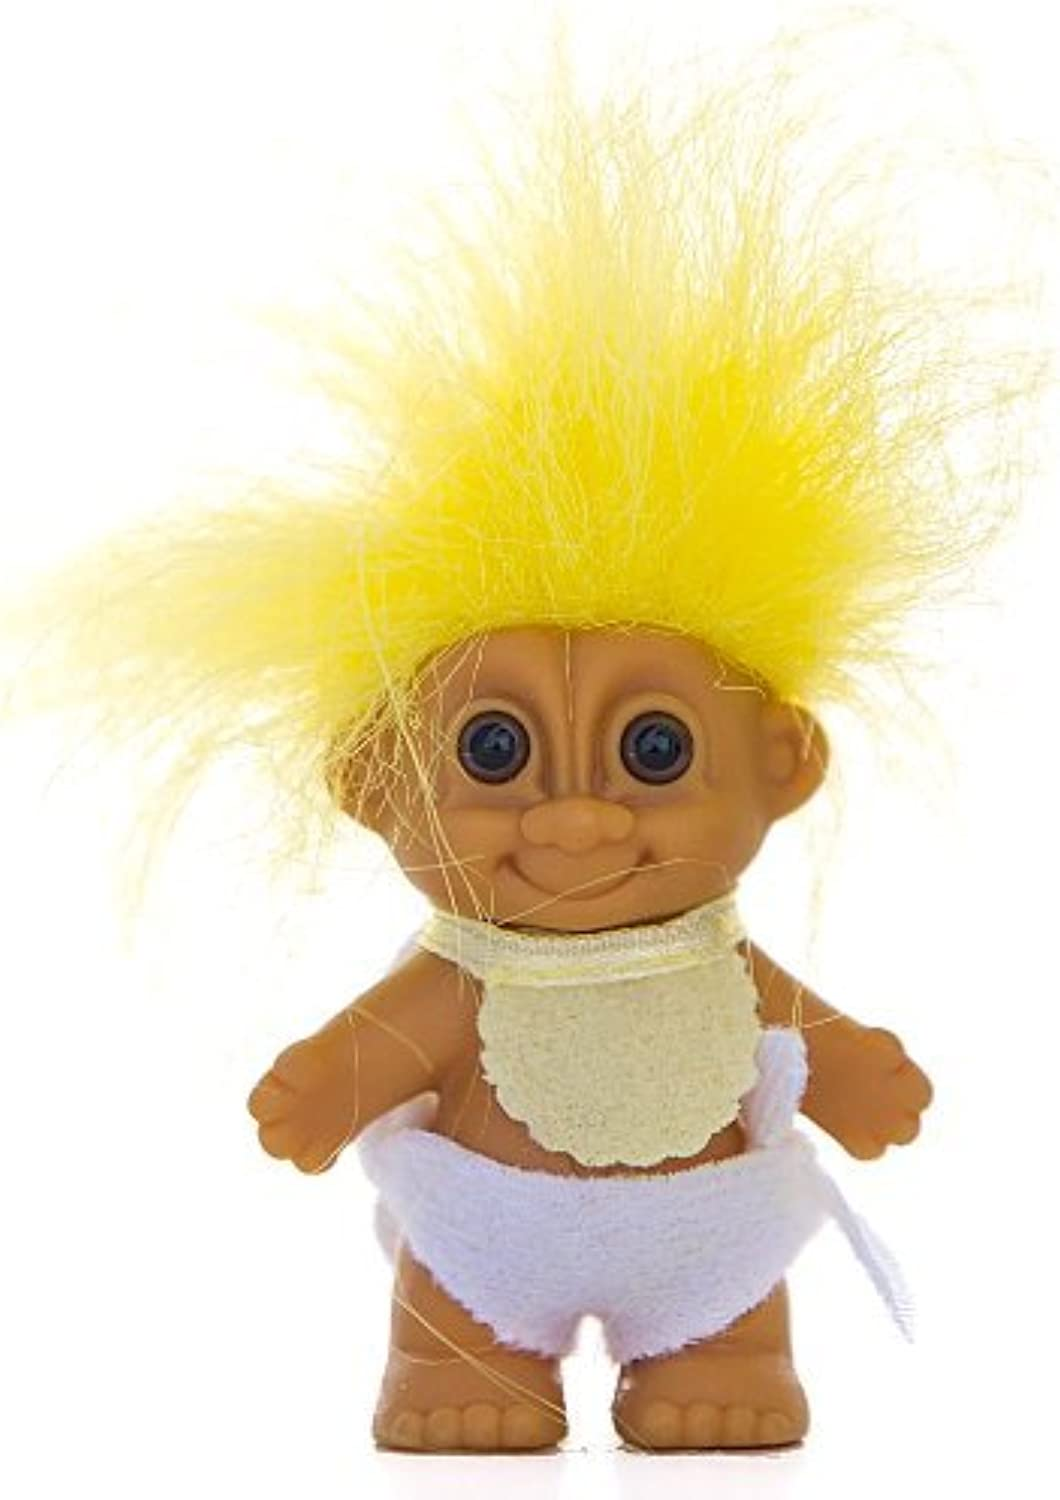 barato My Lucky Mini 2.5 BABY Troll Doll - - - amarillo Hair by Russ Berrie by Russ Berrie  moda clasica